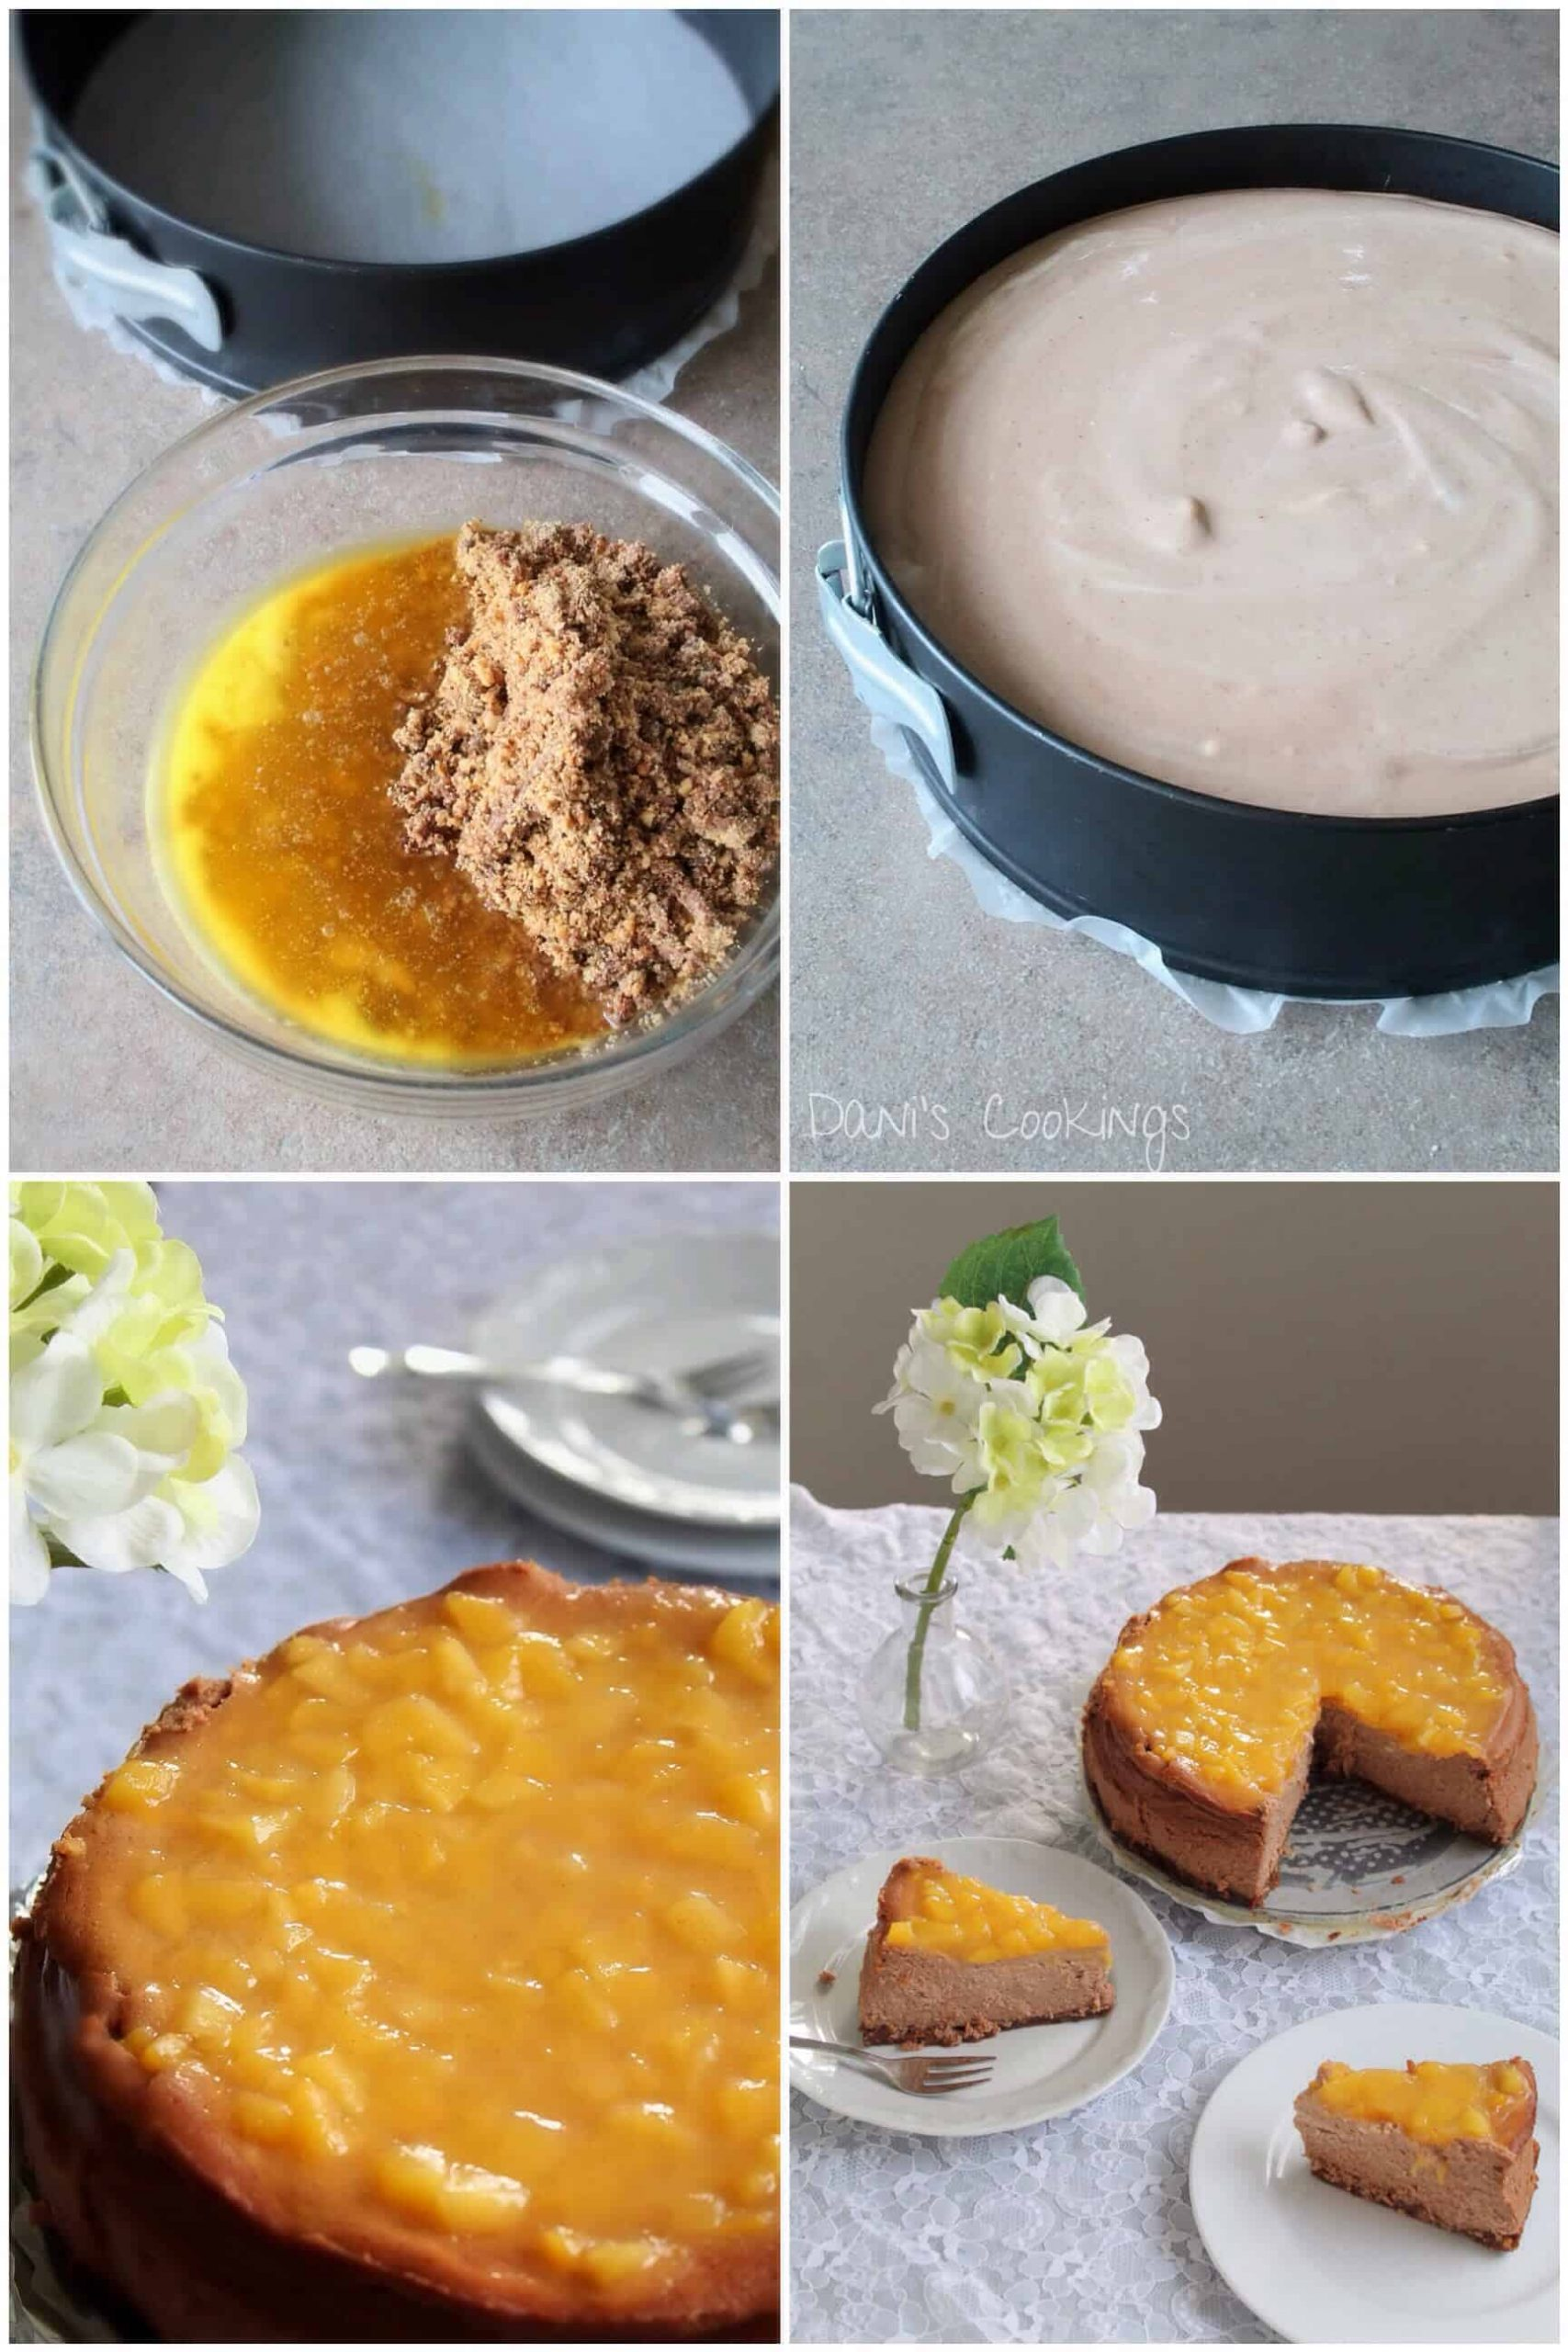 steps to make the cheesecake